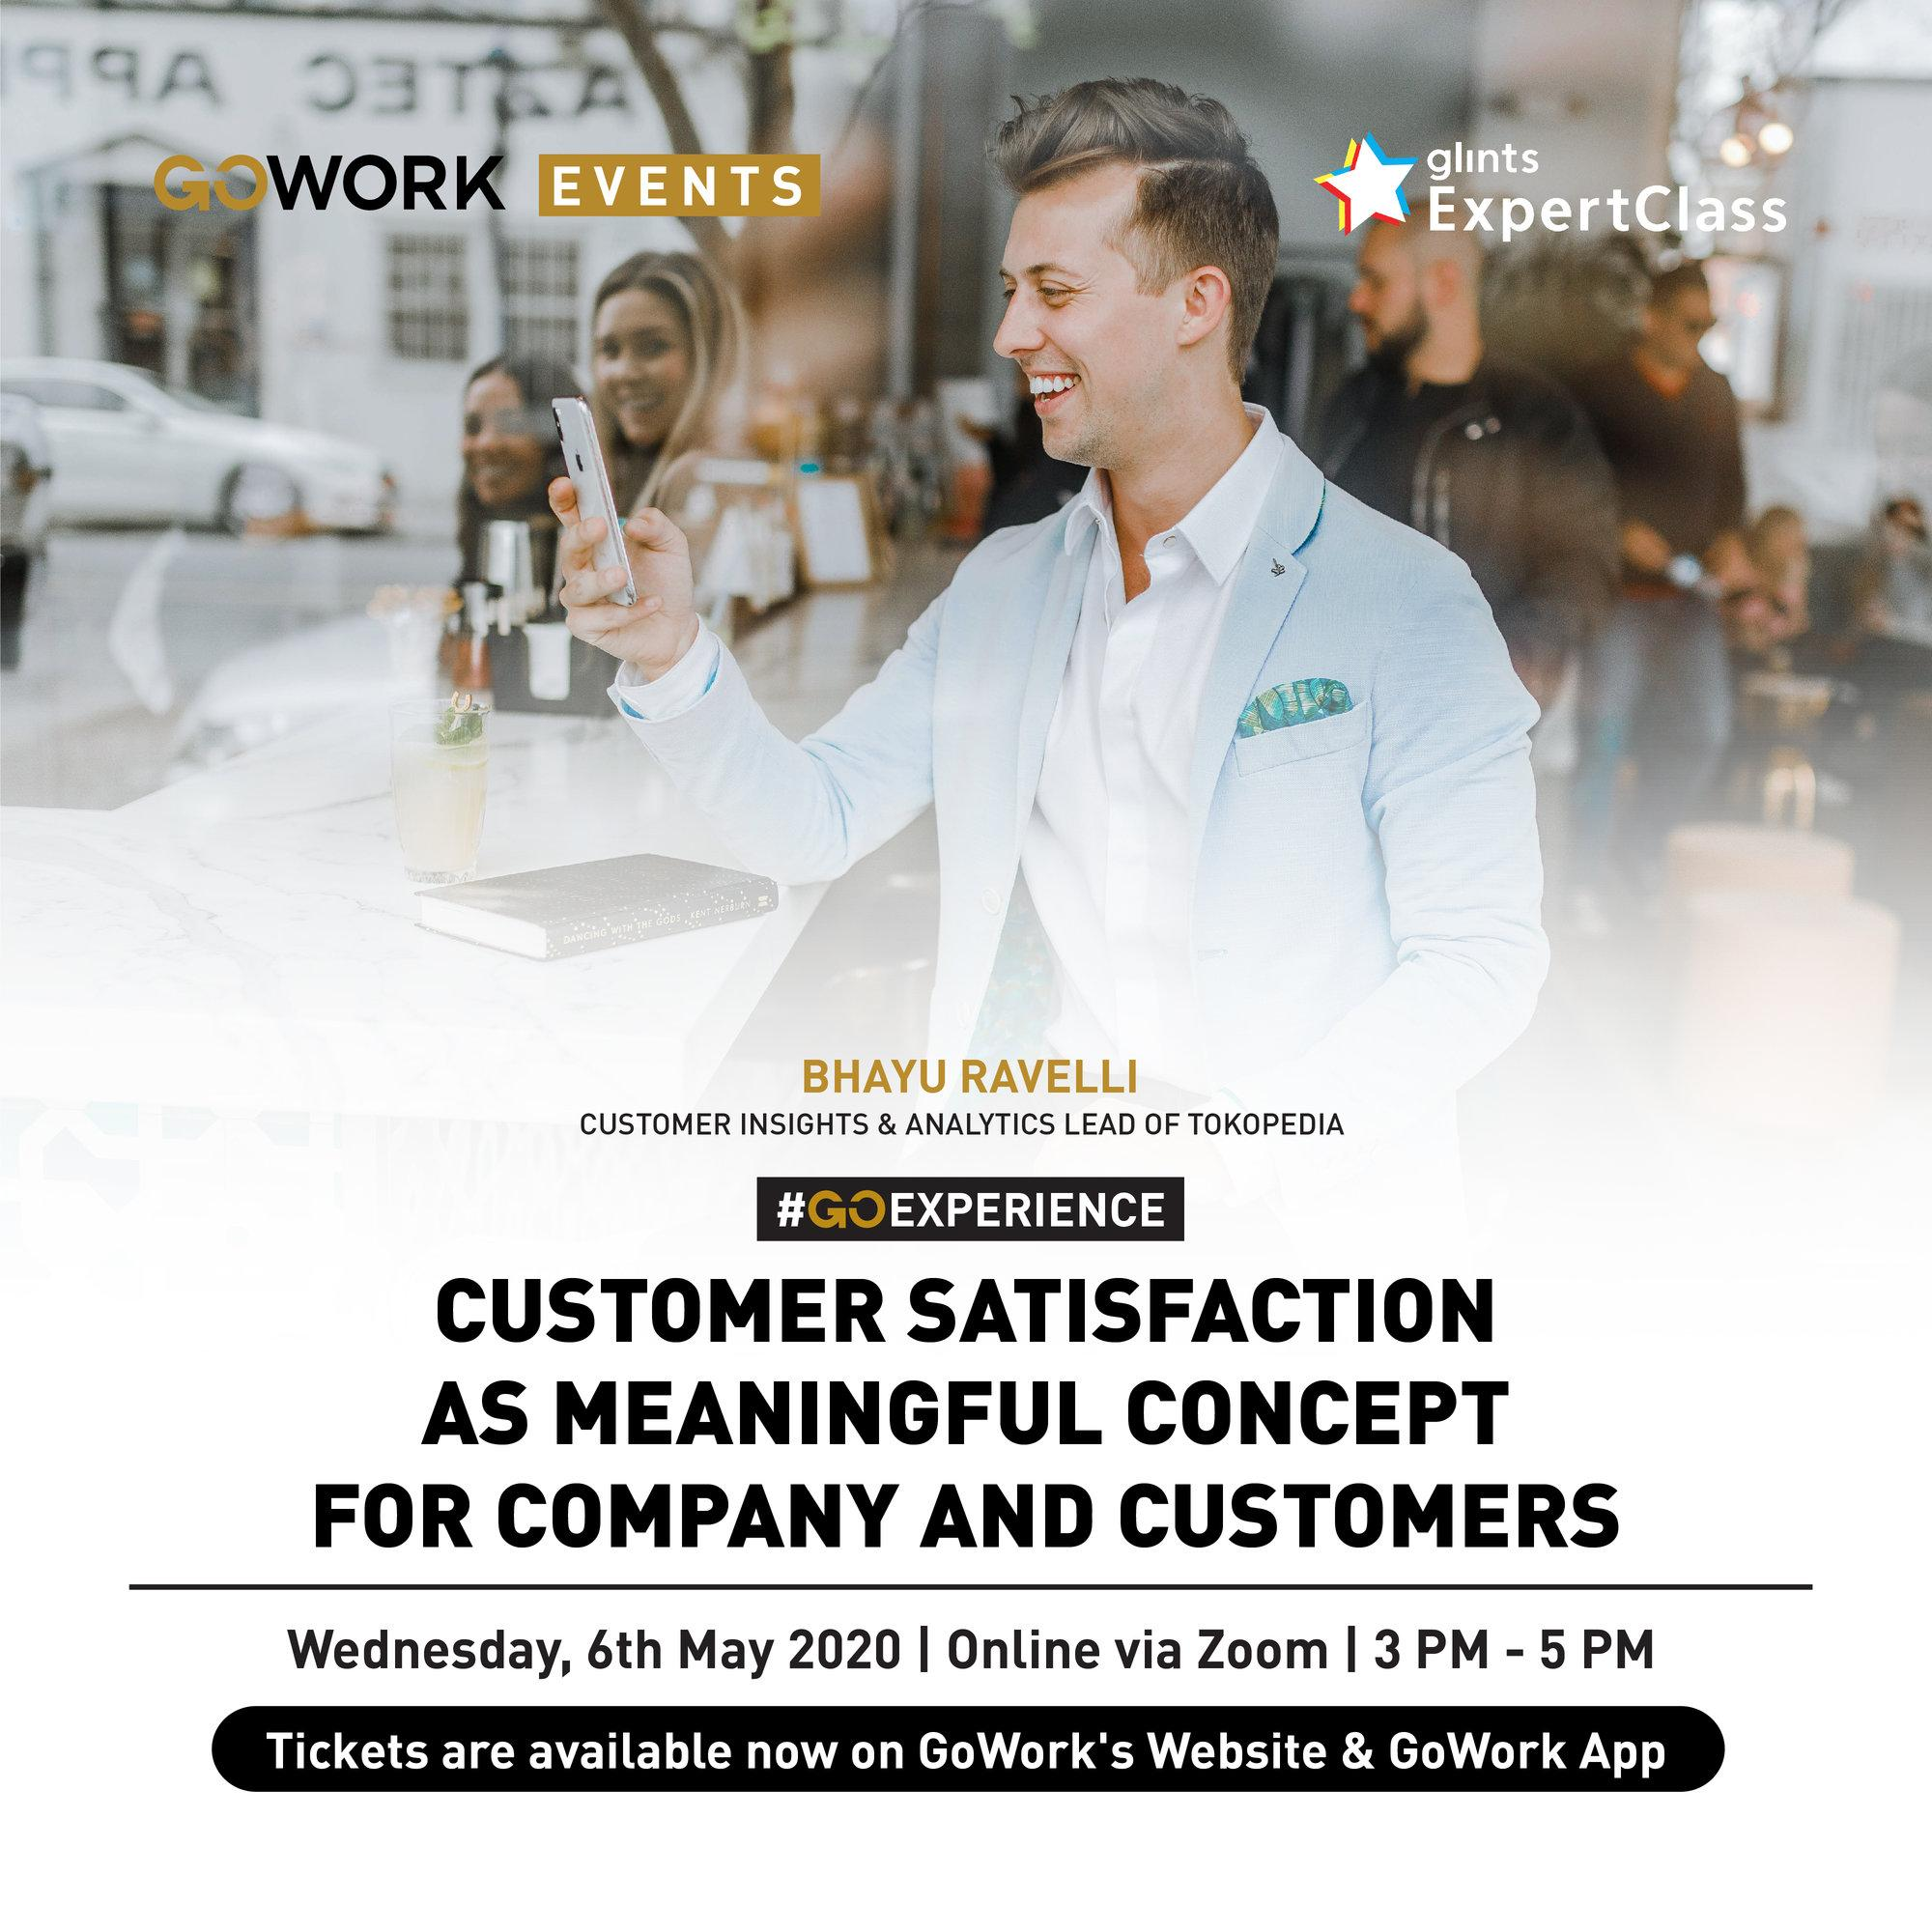 Customer Satisfaction as Meaningful Concept for Company and Customers